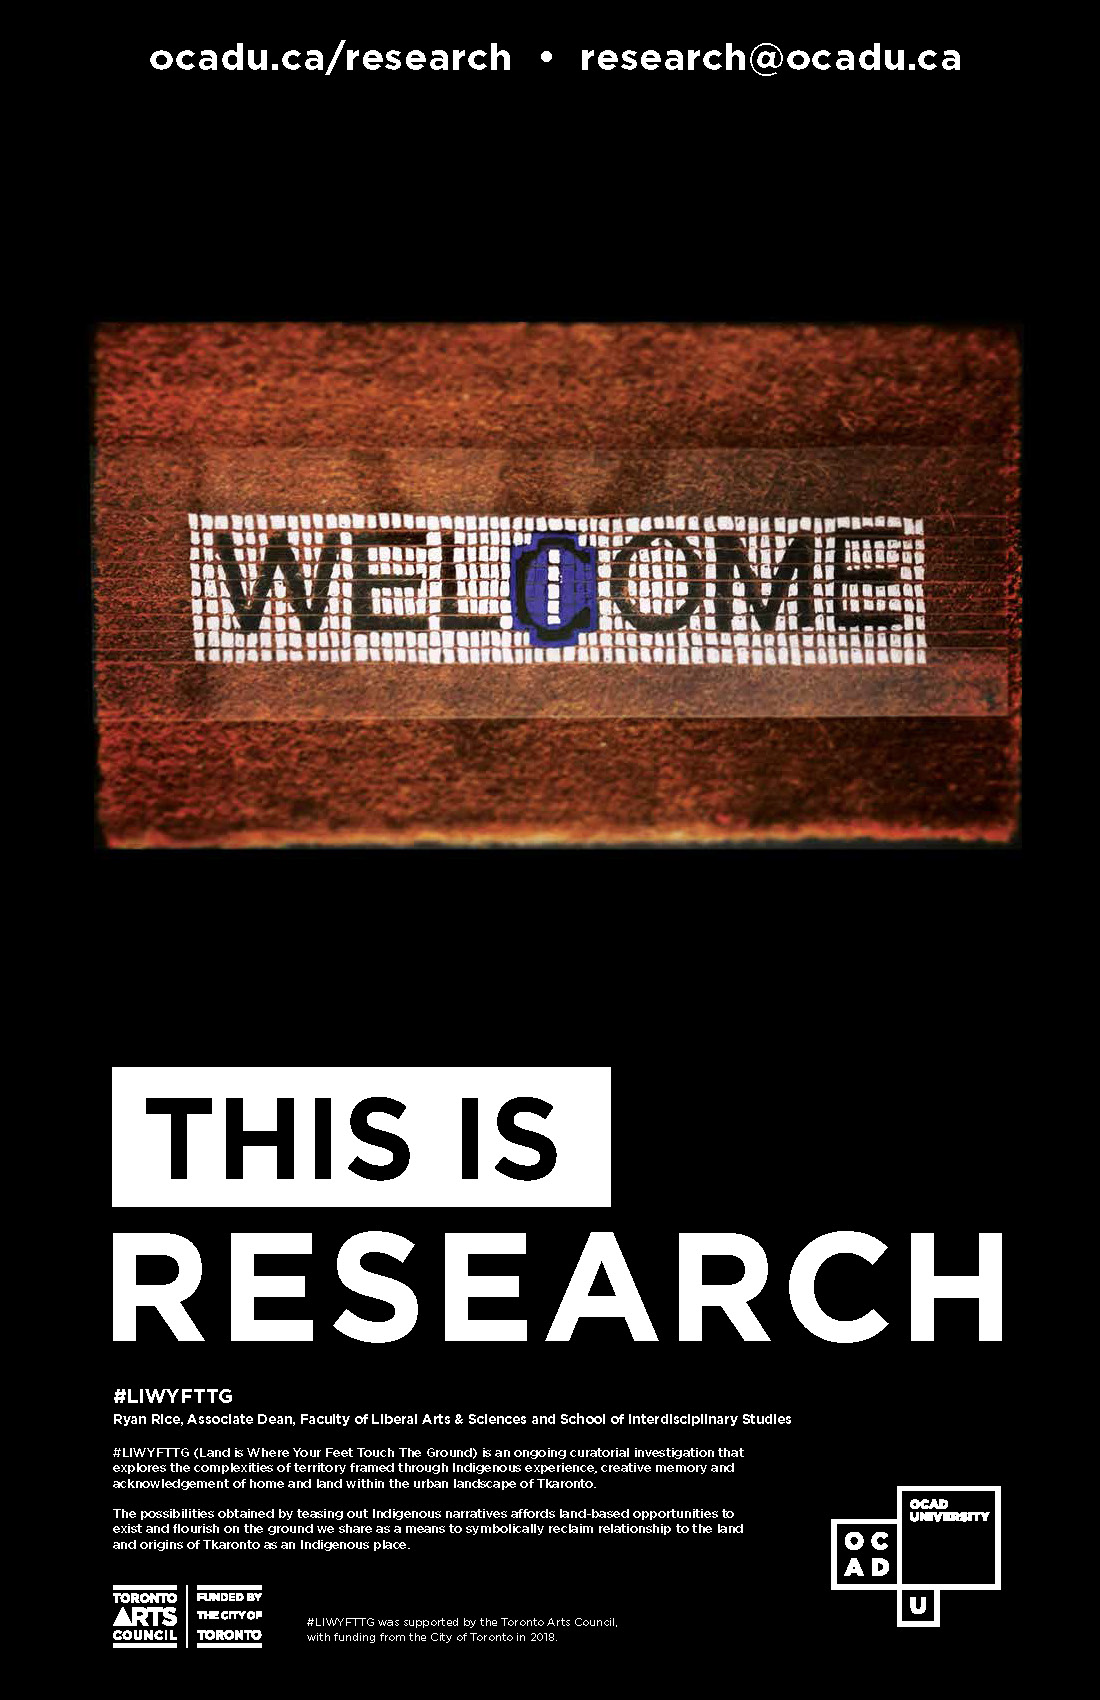 This is Research-full poster. Image features an art piece, a welcome mat, against a black background.